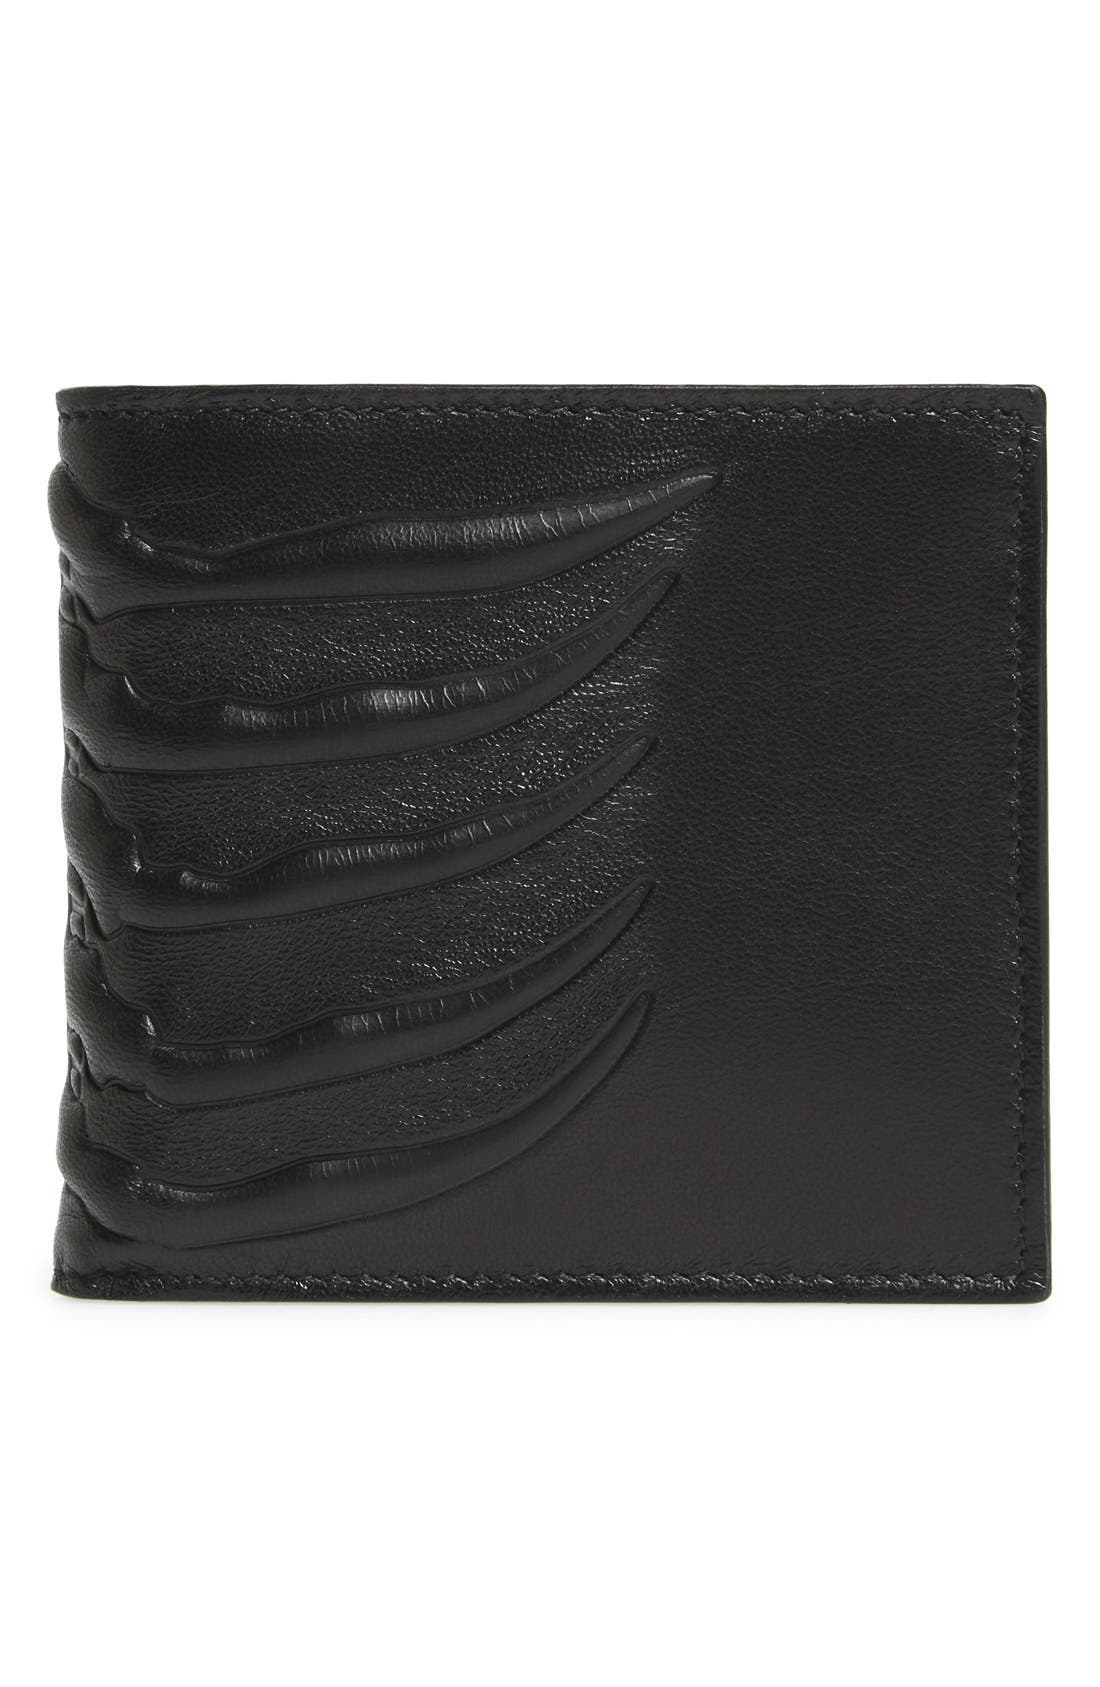 Alternate Image 1 Selected - Alexander McQueen Rib Cage Leather Wallet